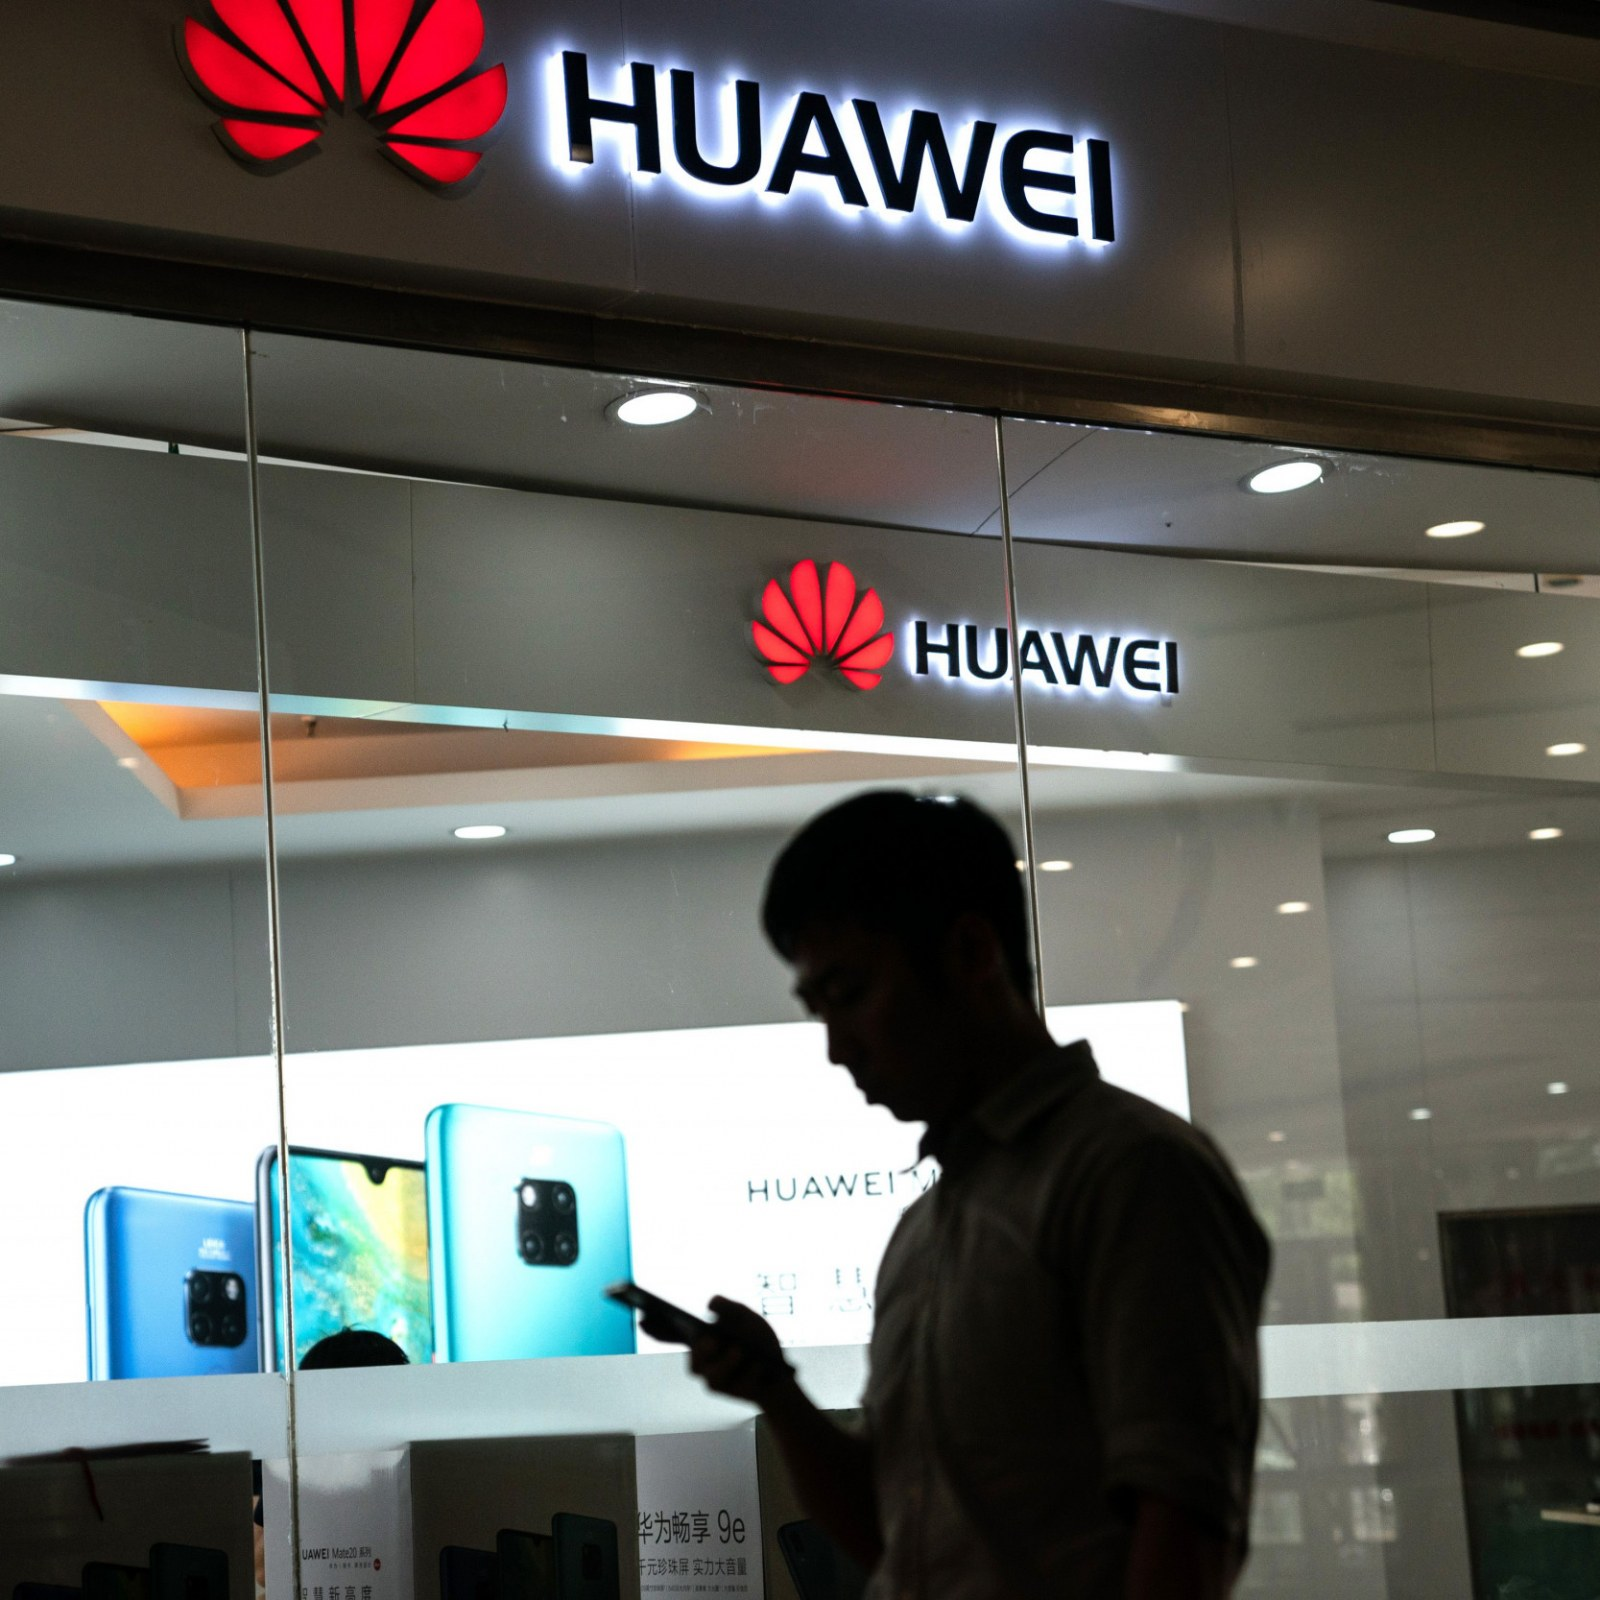 What Is HongMeng? Huawei's Mystery Mobile OS May Soon Be Revealed